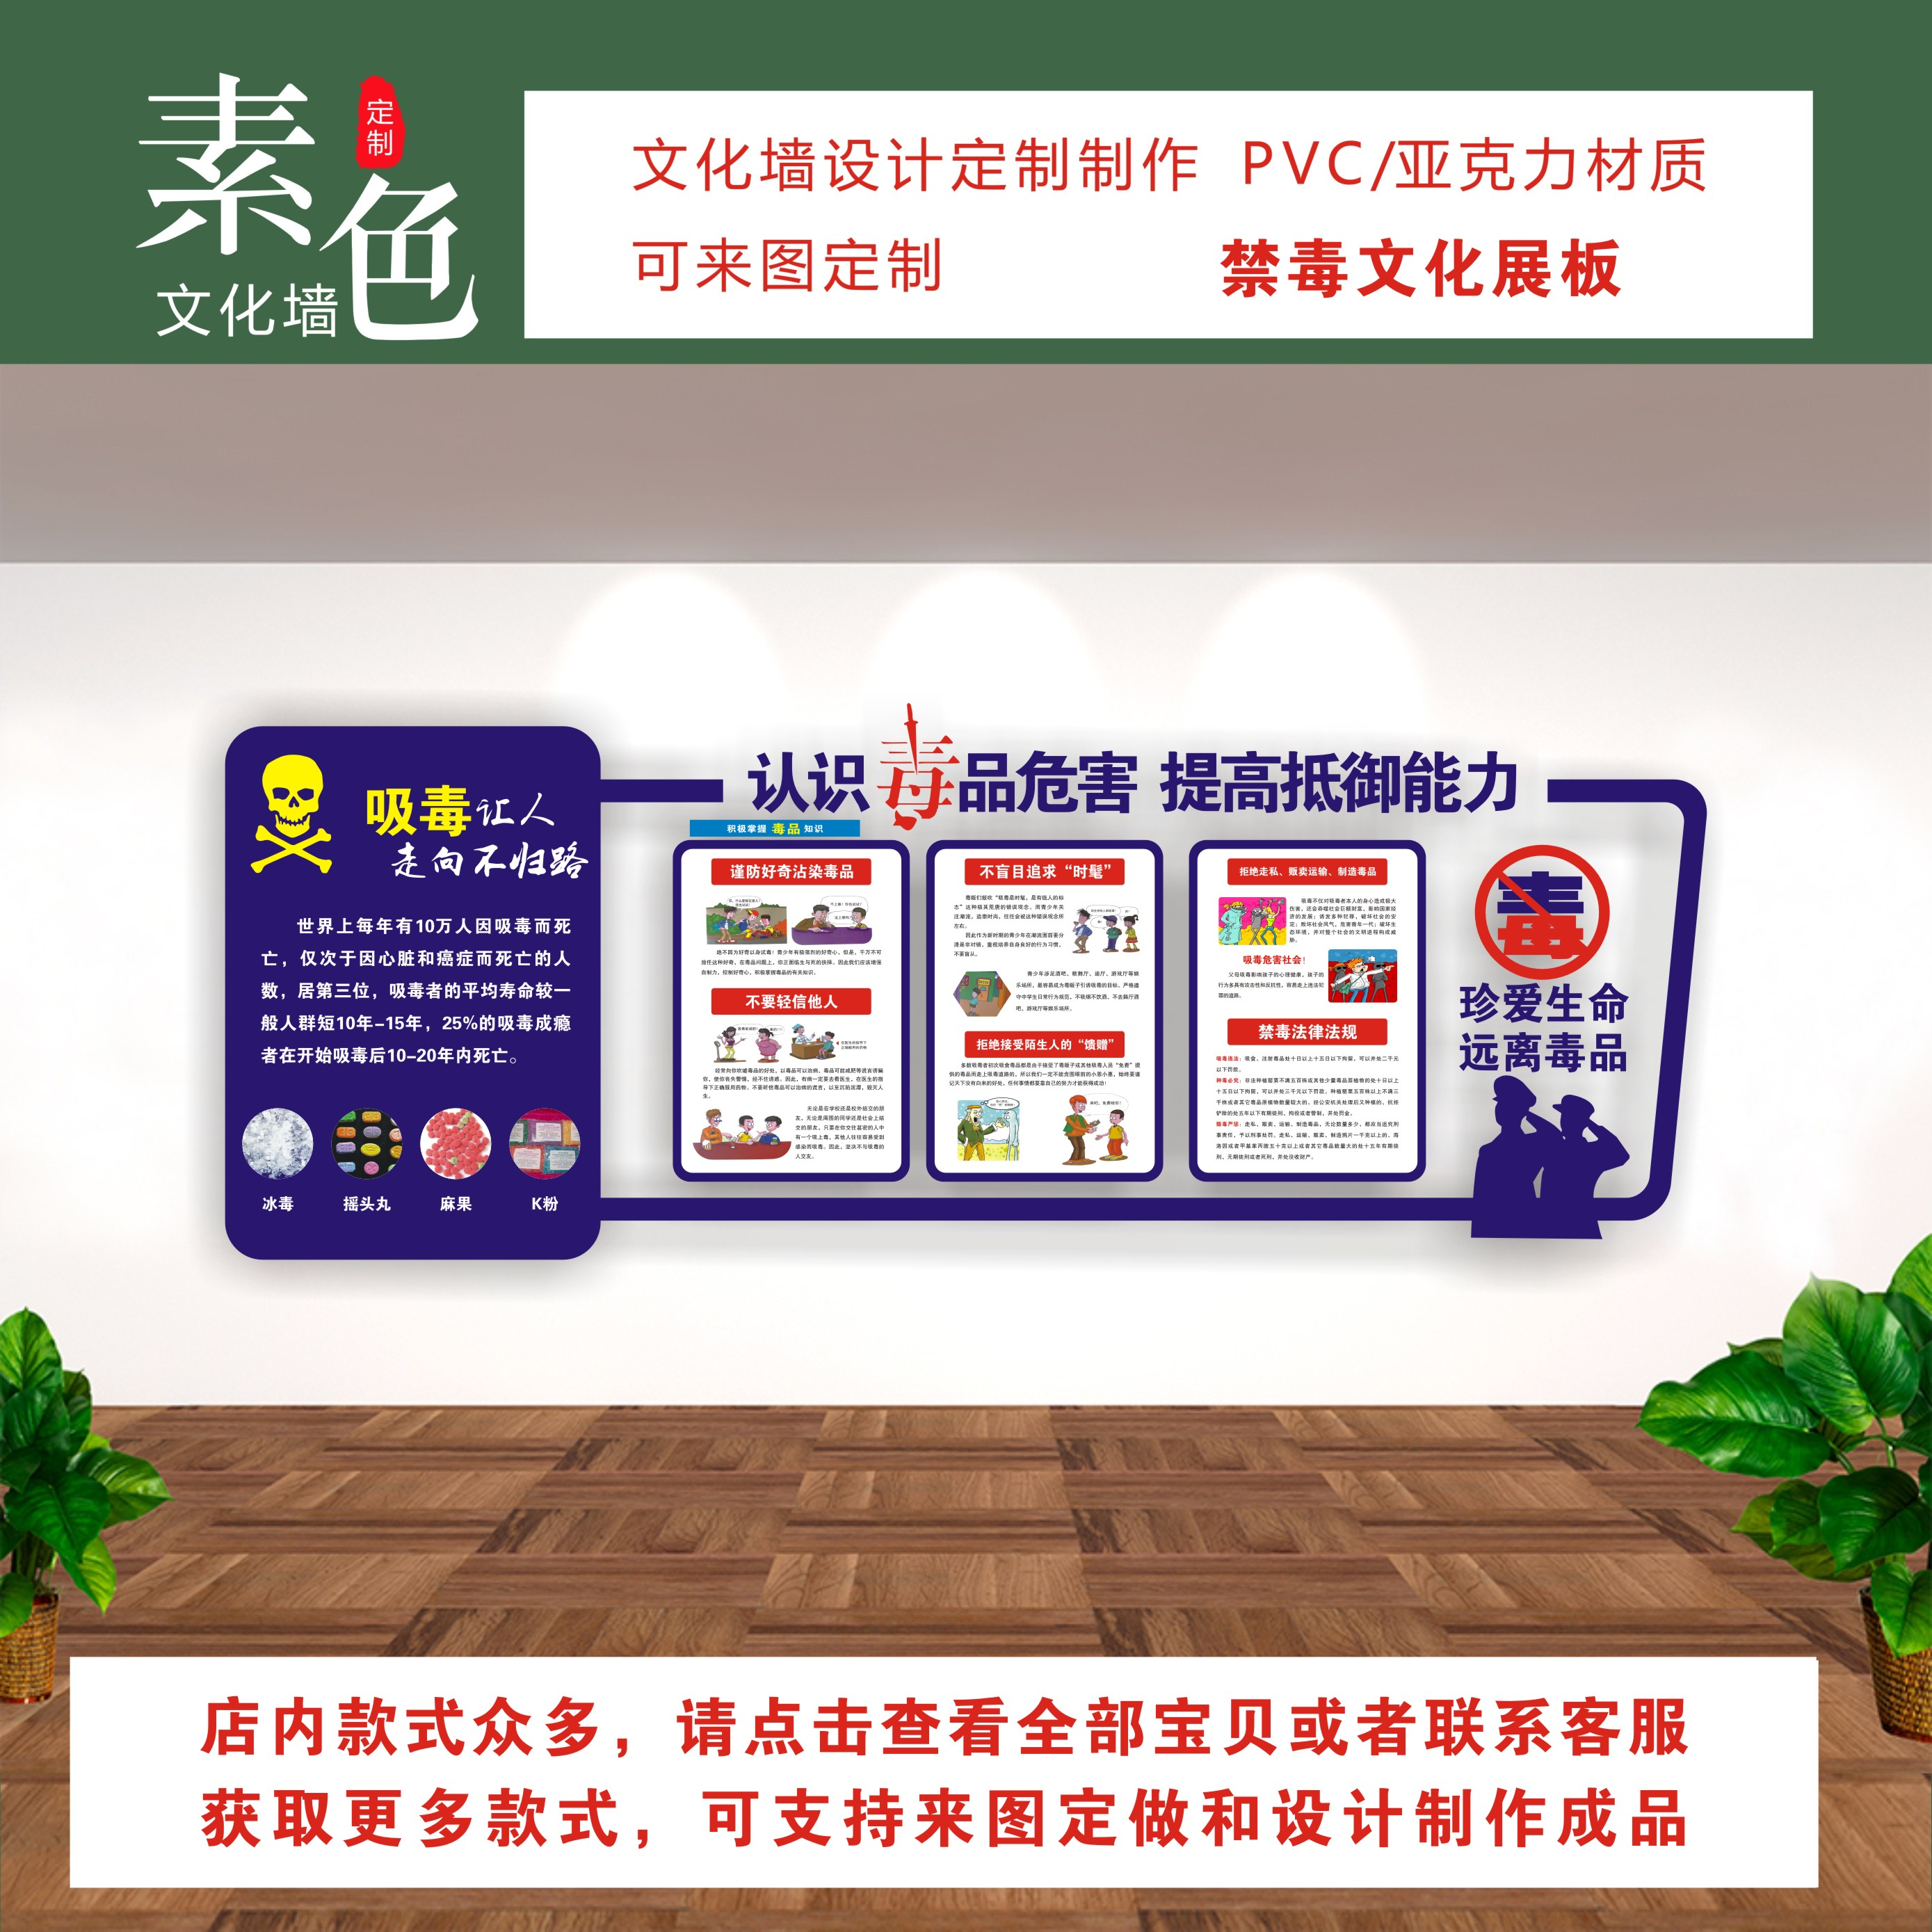 Anti drug culture wall sticker system display board picture of harmful drug taking three dimensional sticker PVC acrylic brand product customization